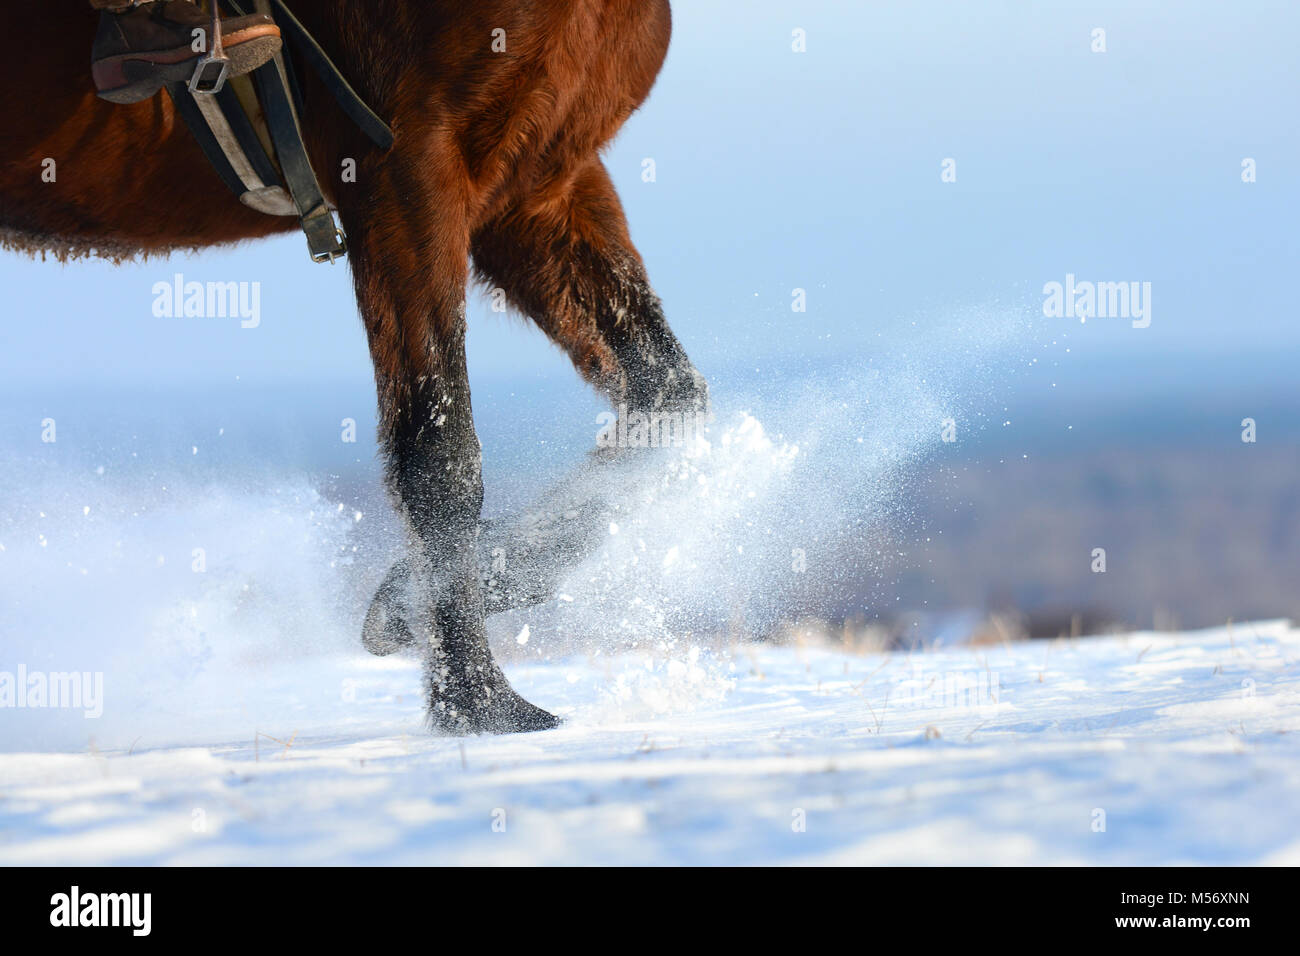 Horses hooves, legs with snow flying around, rising up.  Sorrel horse running through snowy field, covered dry powder - Stock Image